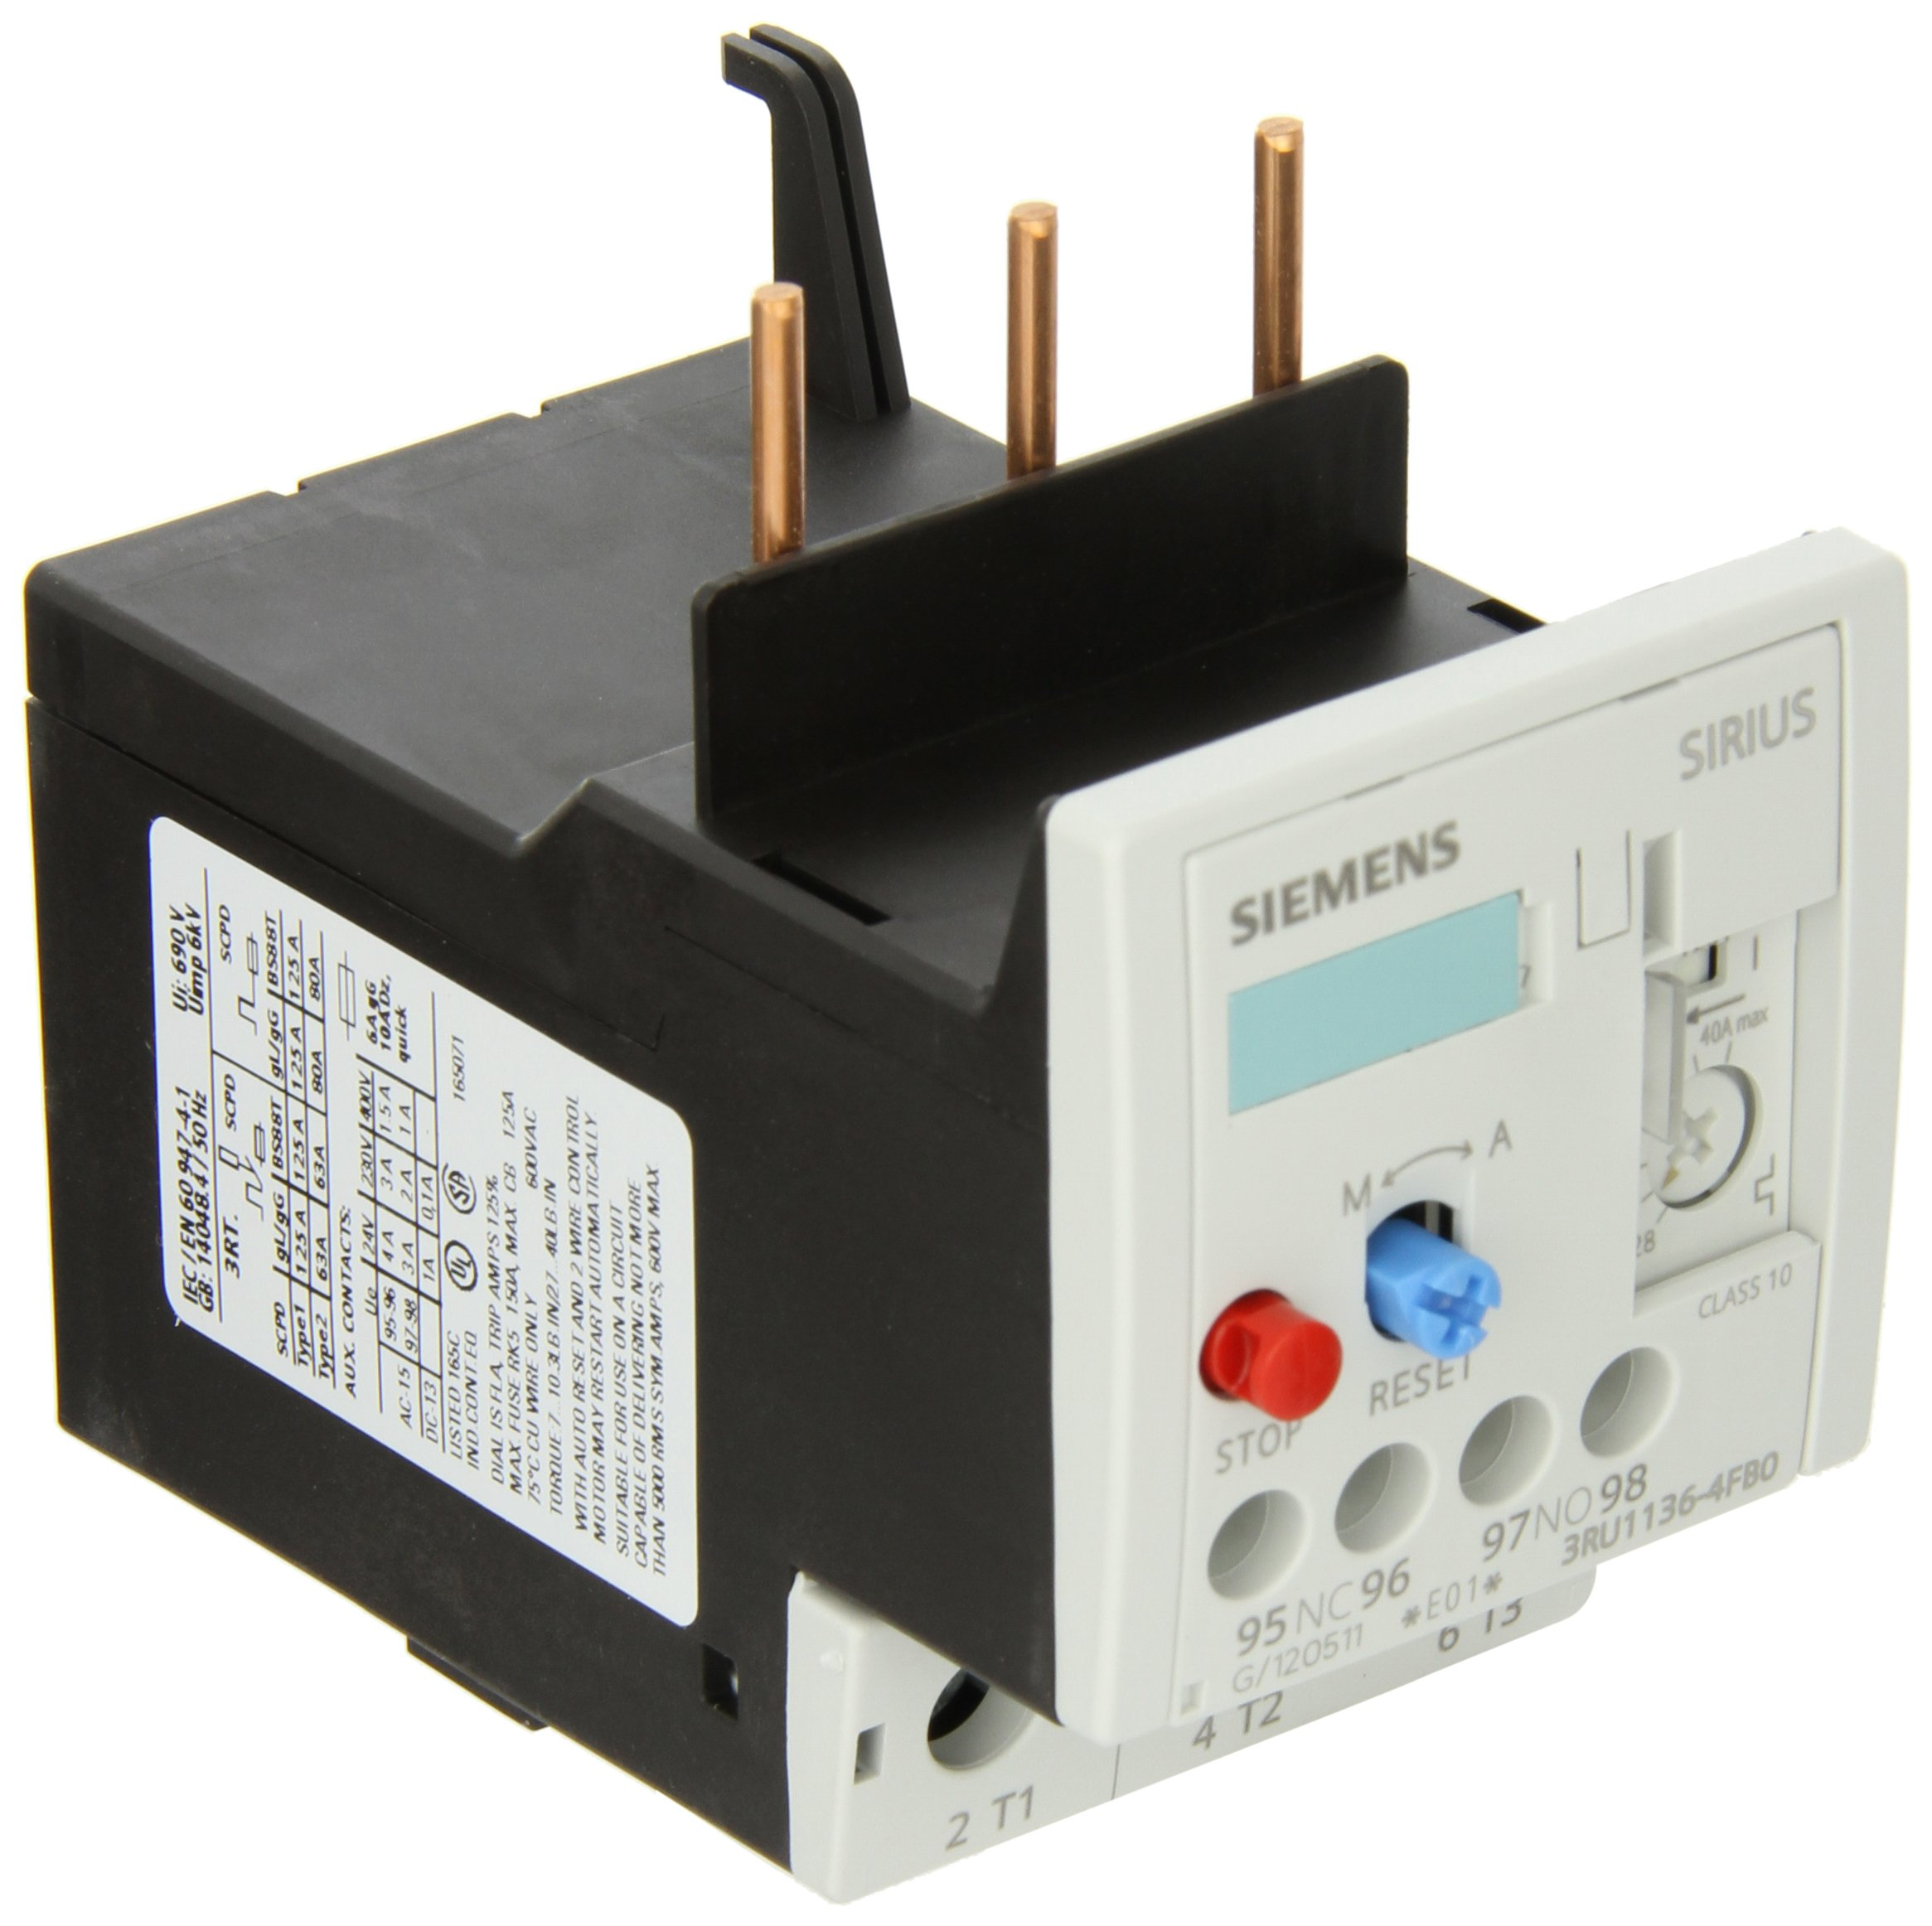 Siemens 3RU11 36-4FB0 Thermal Overload Relay, For Mounting Onto Contactor, Size S2, 28-40A Setting Range